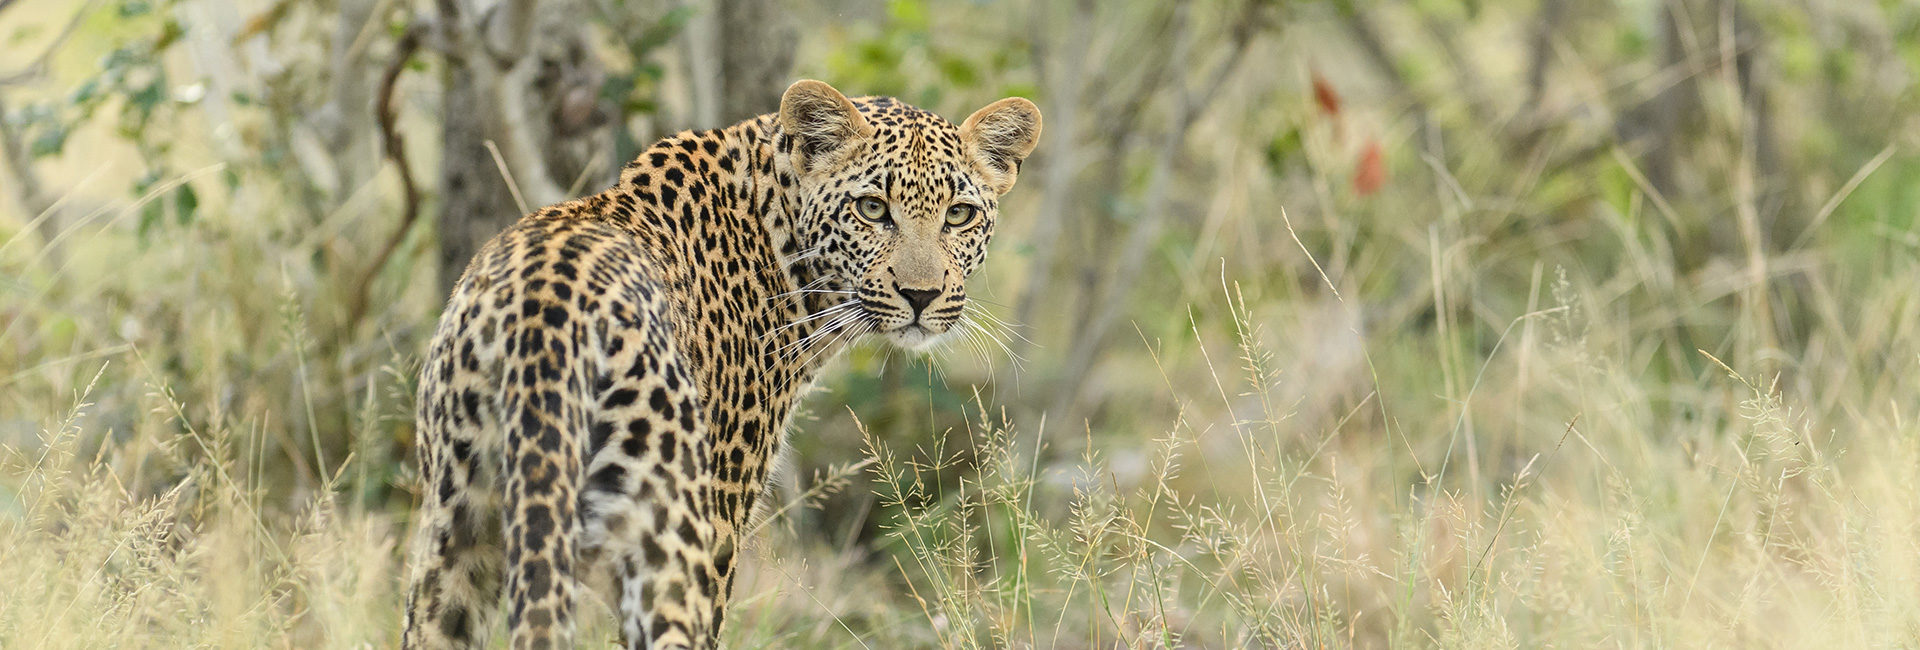 Get up close to the majestic Big Five